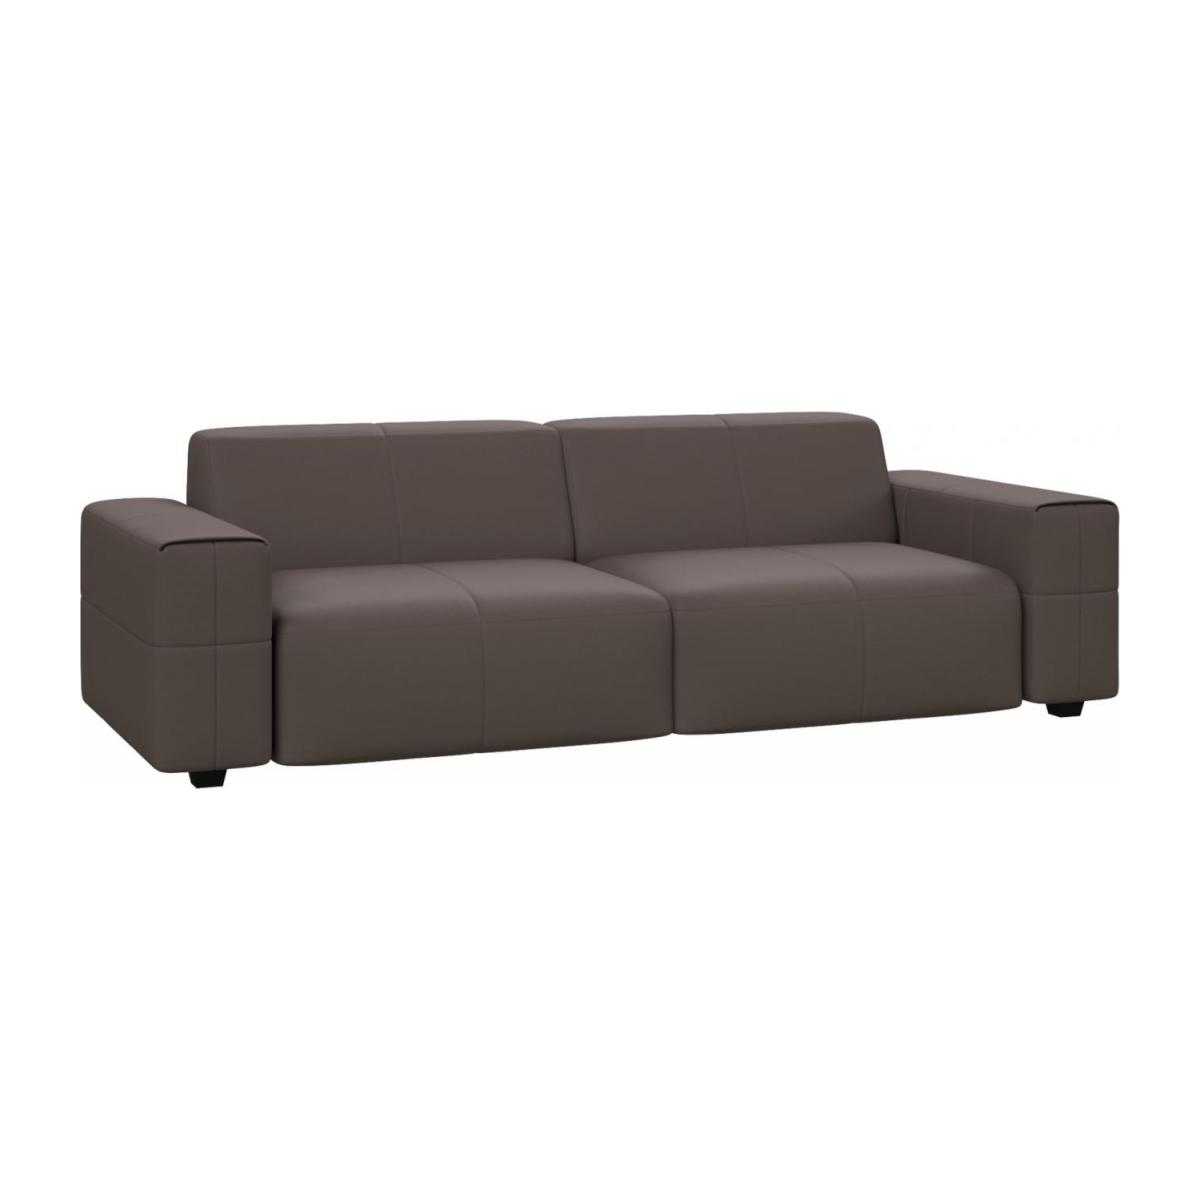 4 seater sofa in Eton veined leather, stone n°1